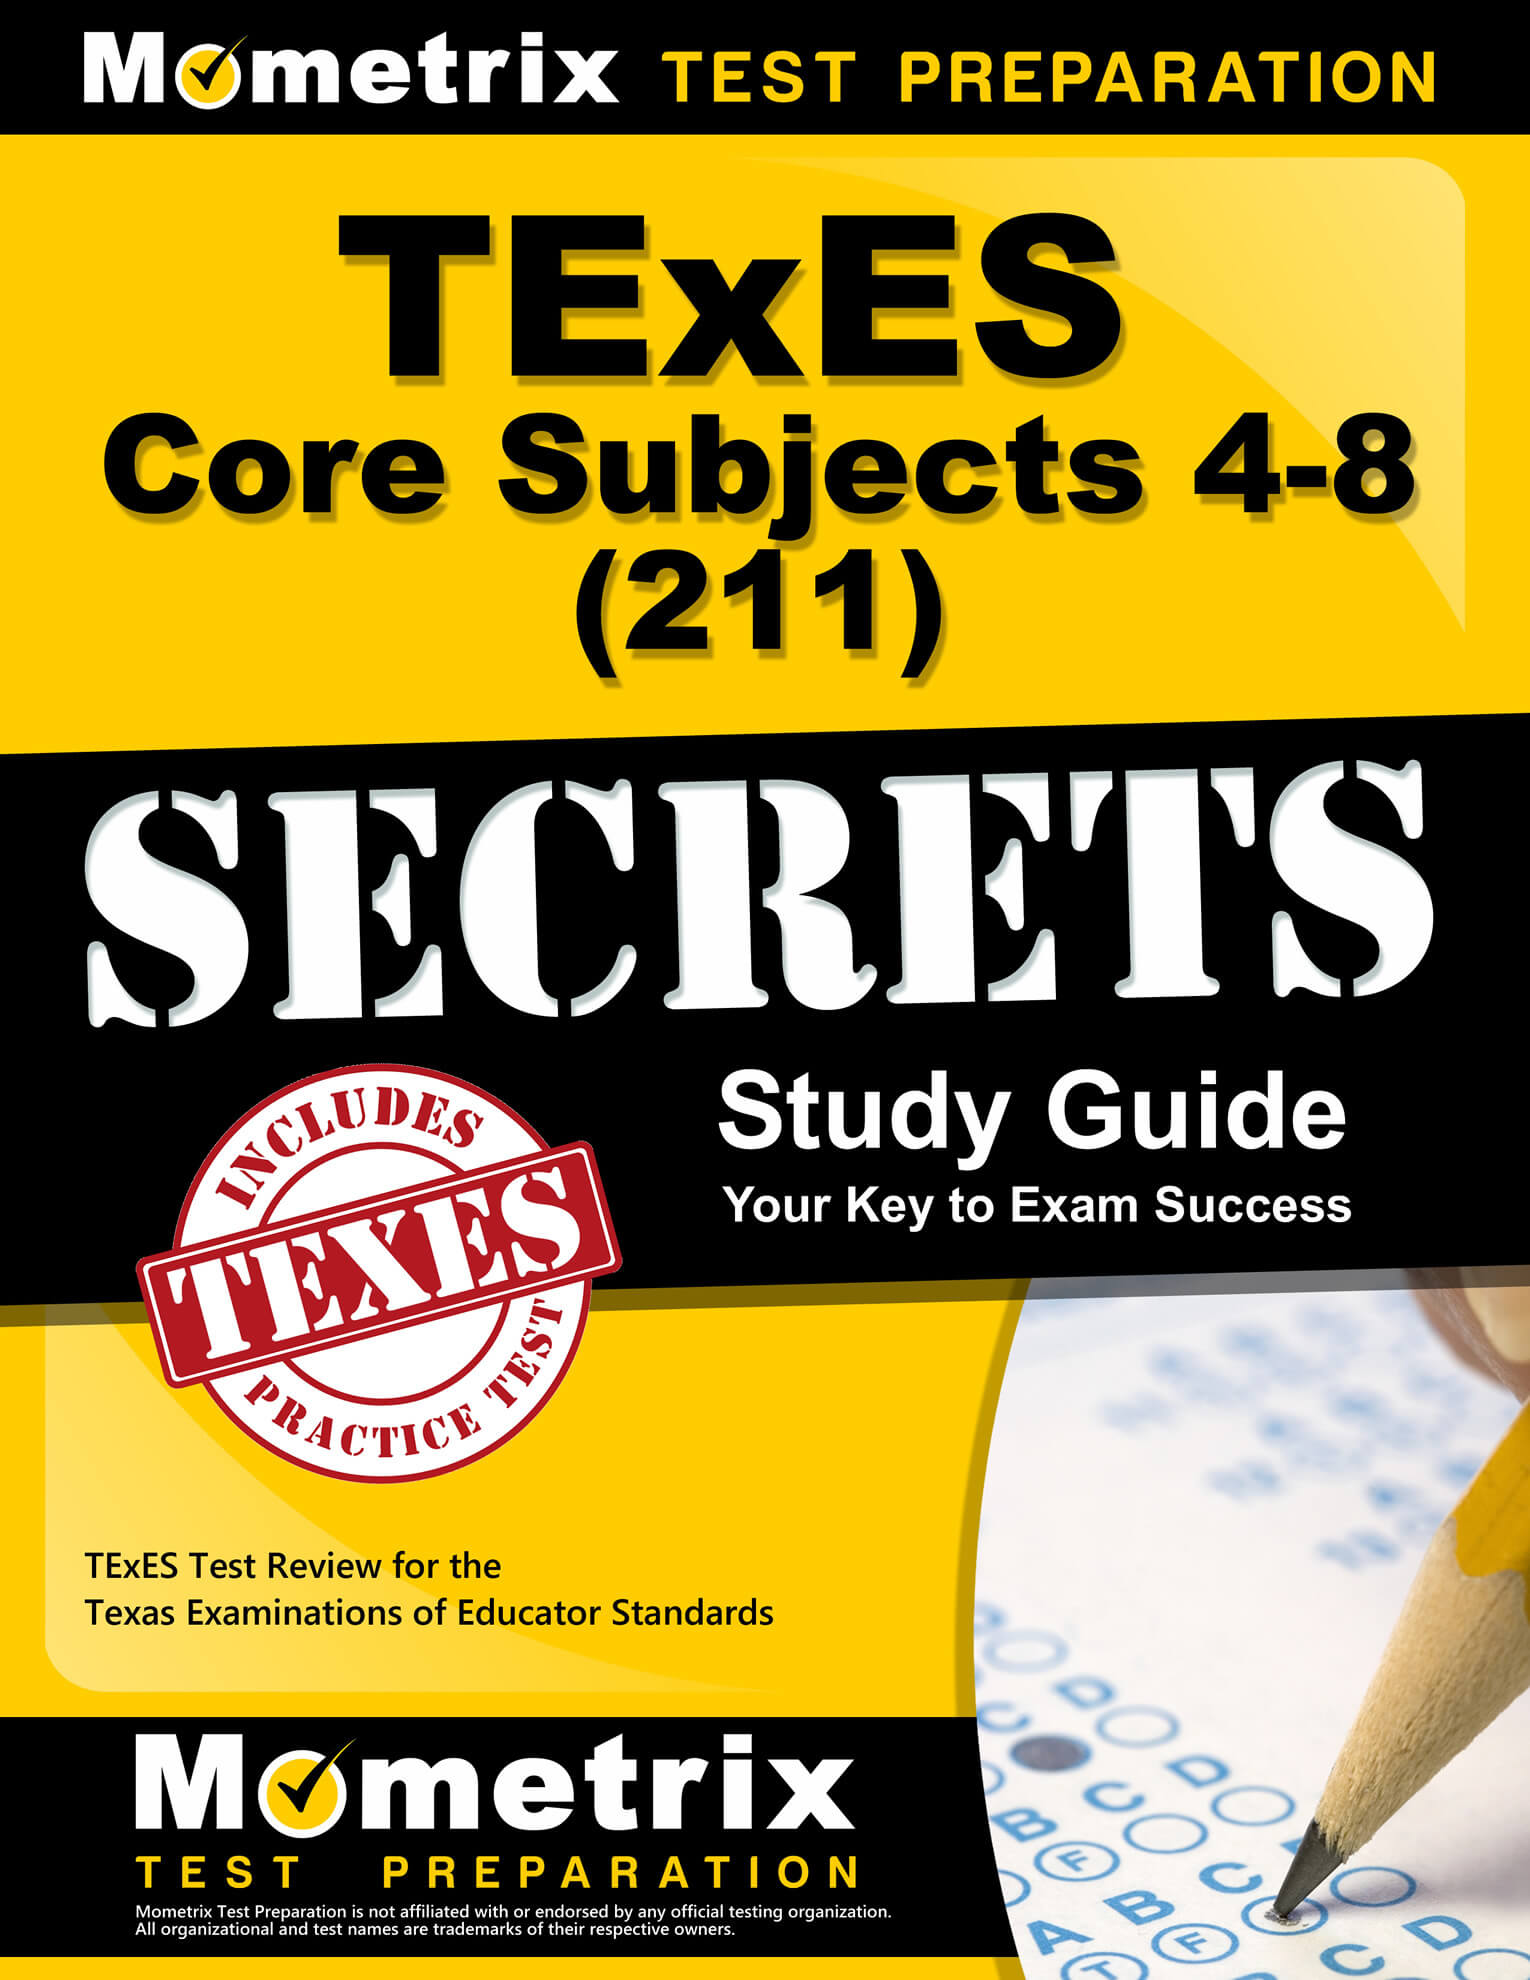 TExES Core Subjects 4-8 Study Guide